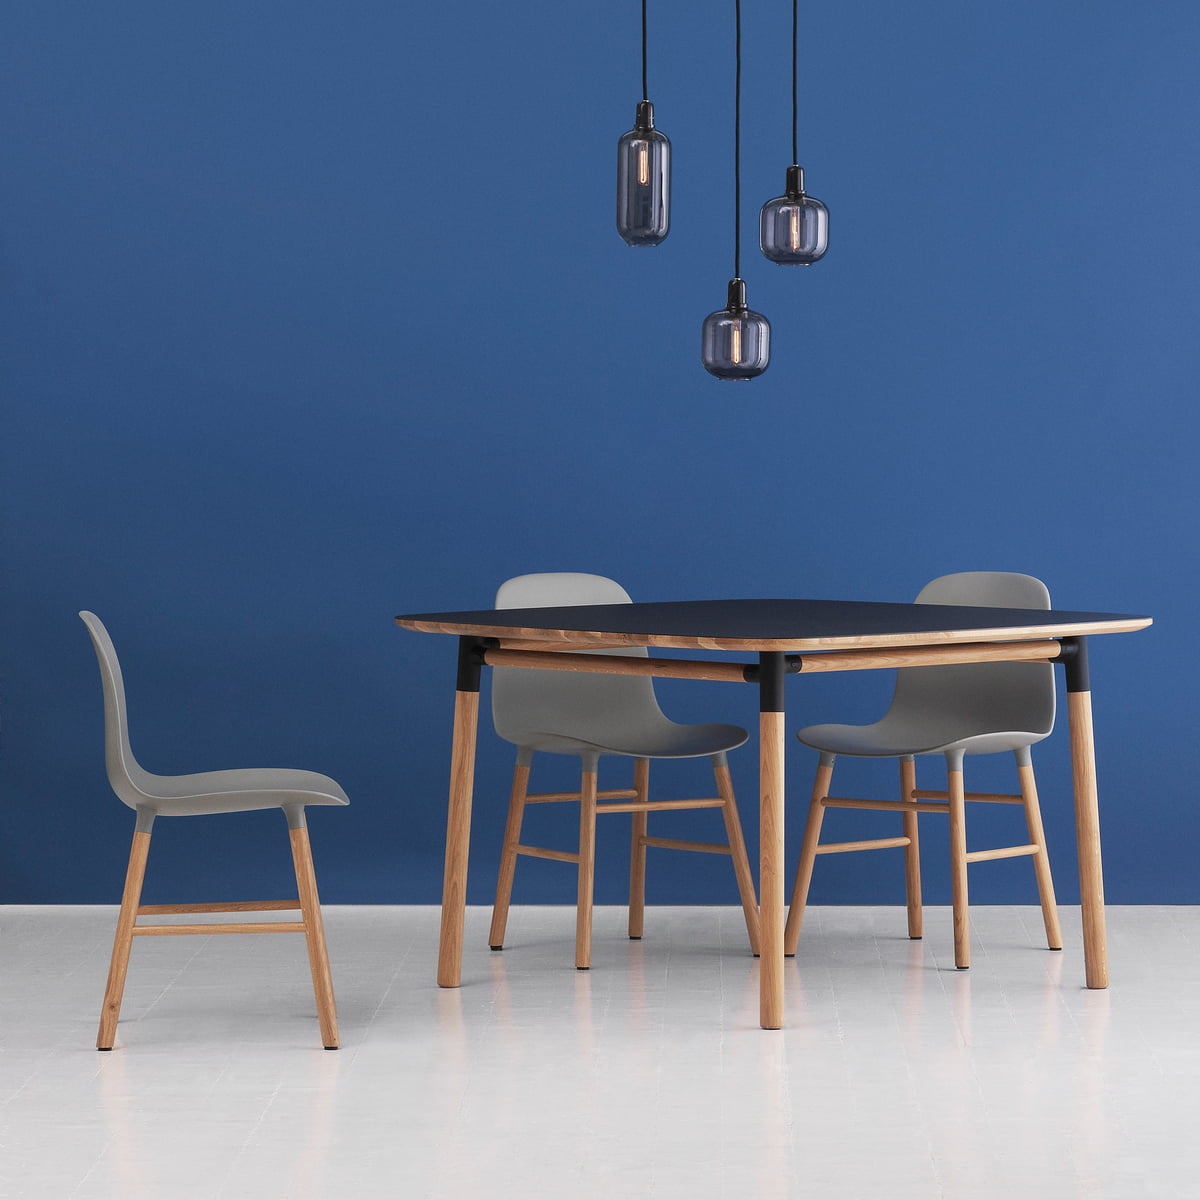 Wunderbar Form Table 120 X 120 Cm Von Normann Copenhagen